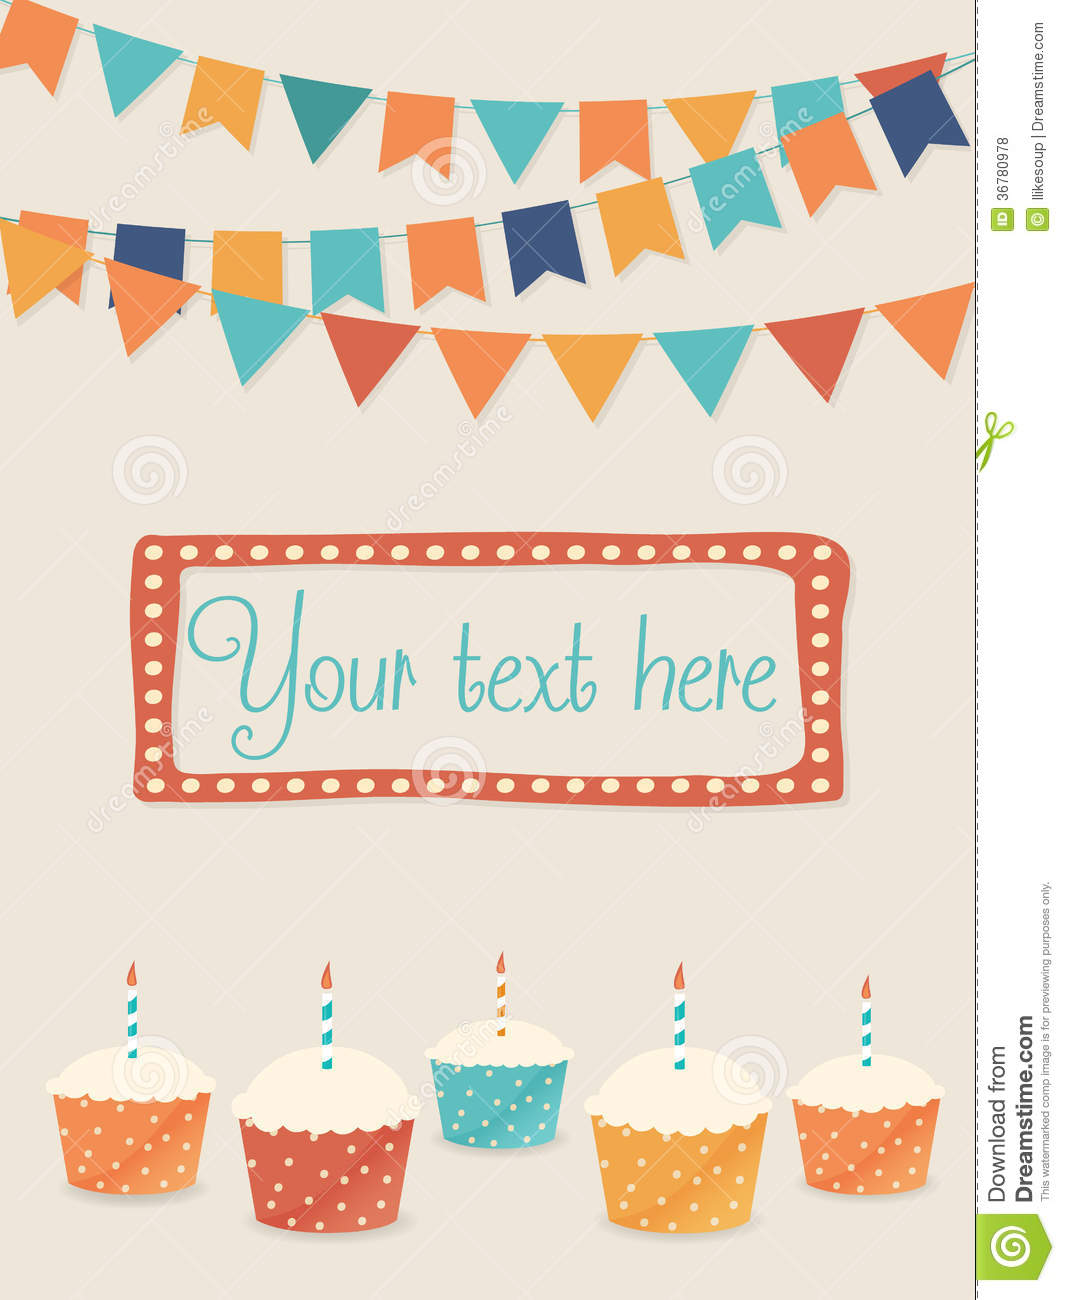 Vector Birthday Card With Party Flags And Cupcakes Royalty Free Stock ...